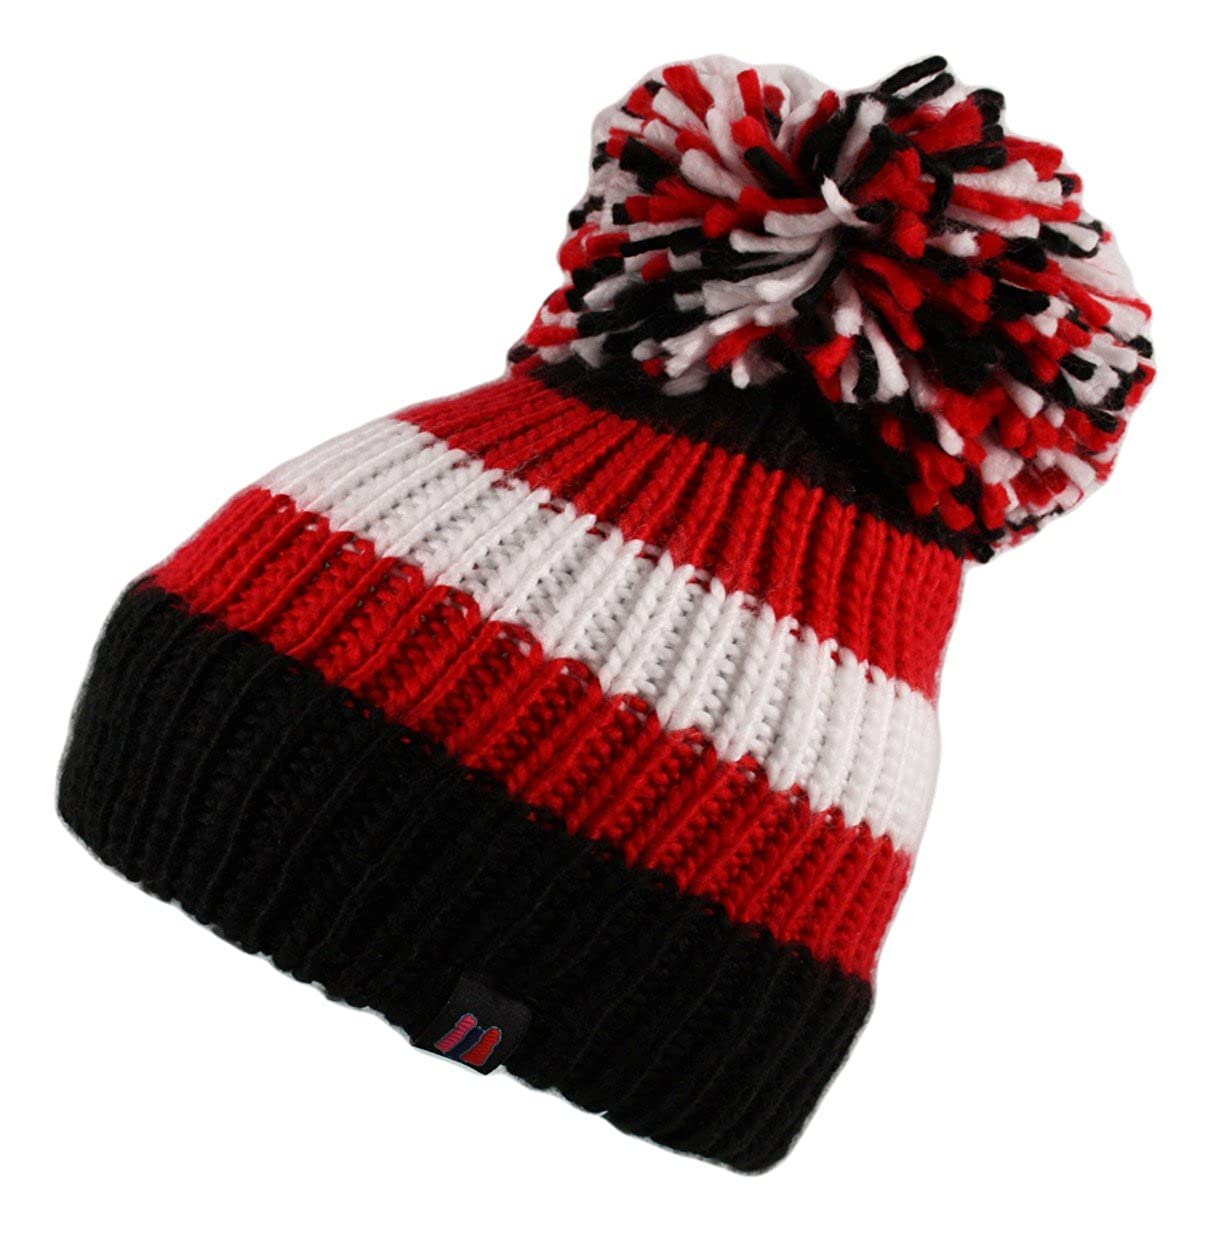 8ba77d1fb80 Itzu Big Bobble Stripe Ribbed Beanie Hat Cap Marl Knitted Pom Pom Roll Turn  Up in Black Red White  Amazon.co.uk  Clothing